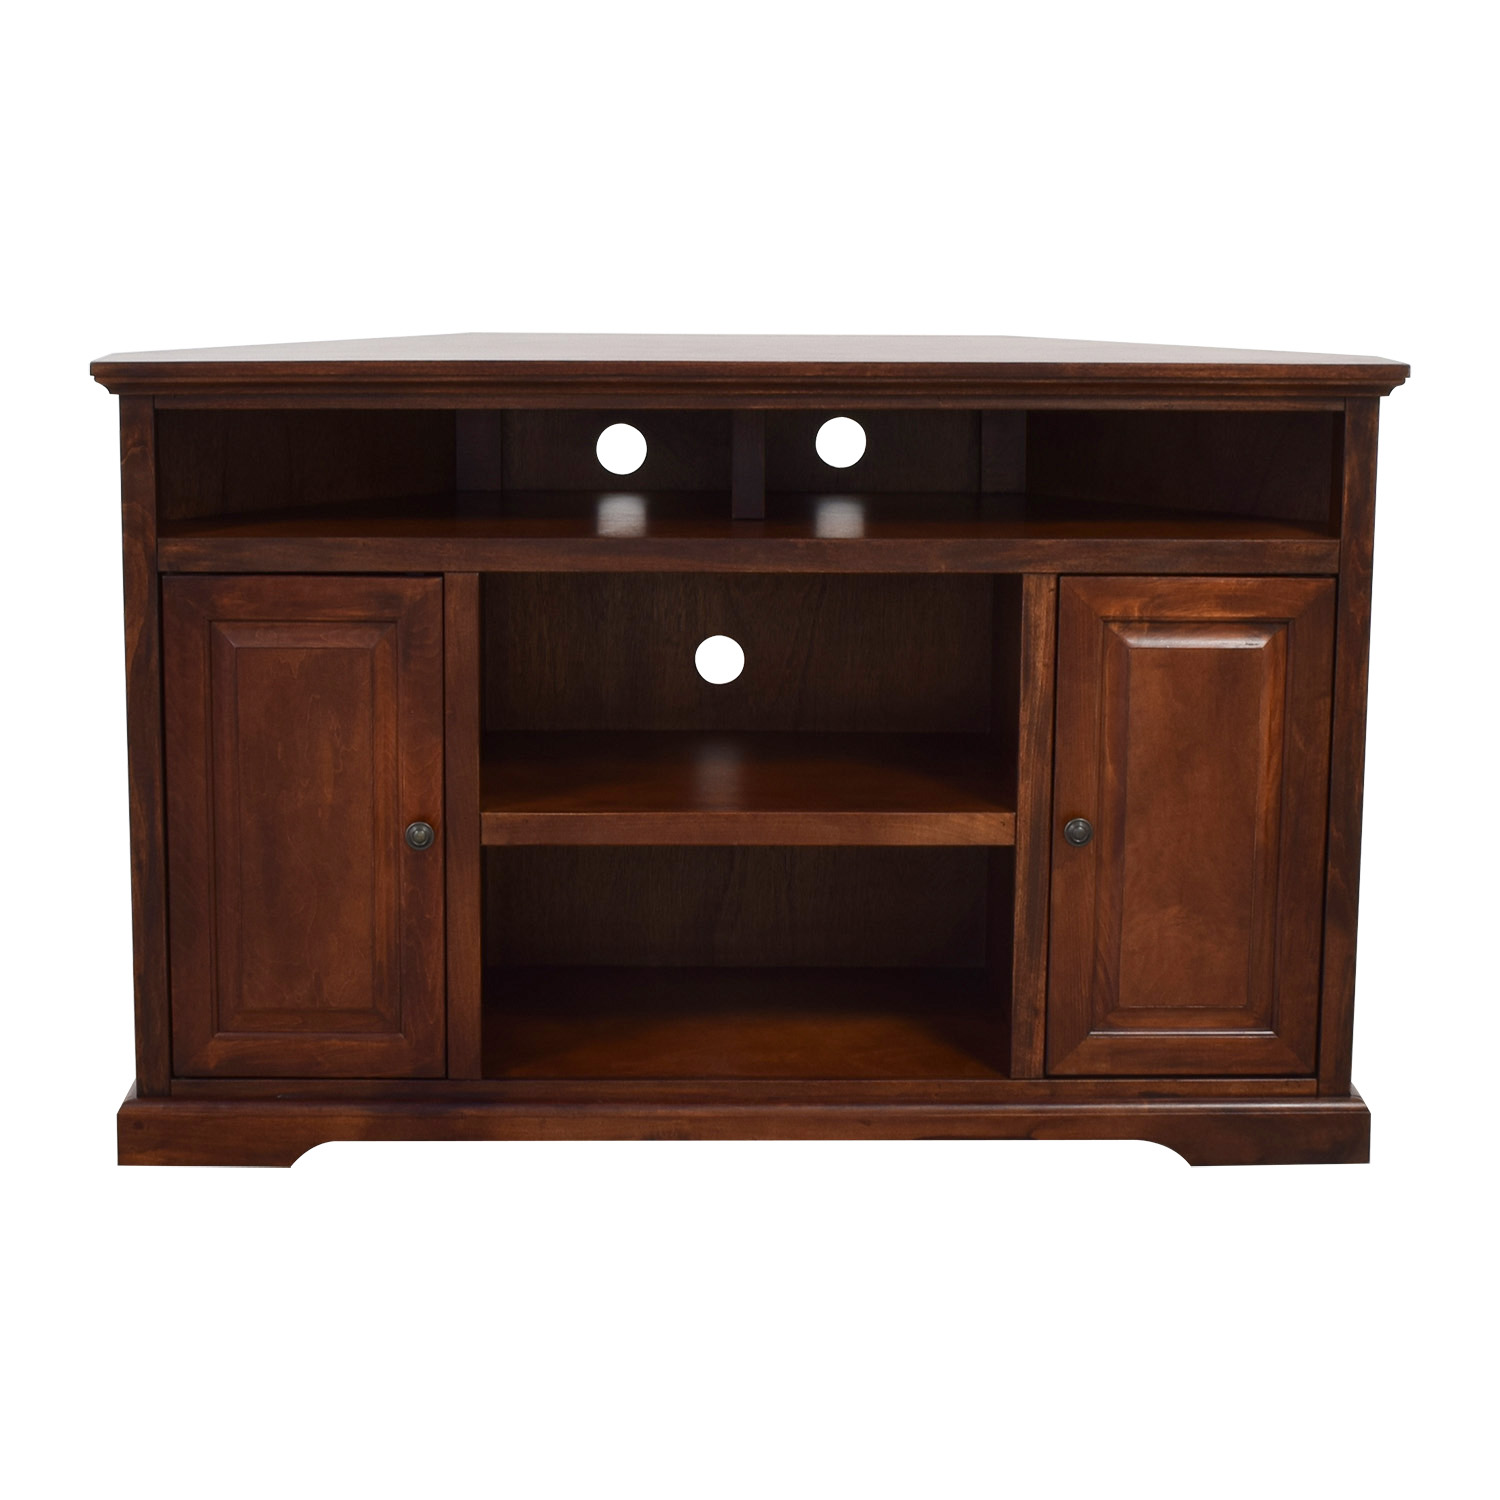 Darby Home Co. Darby Home Co. Legrand Corner TV Stand dimensions